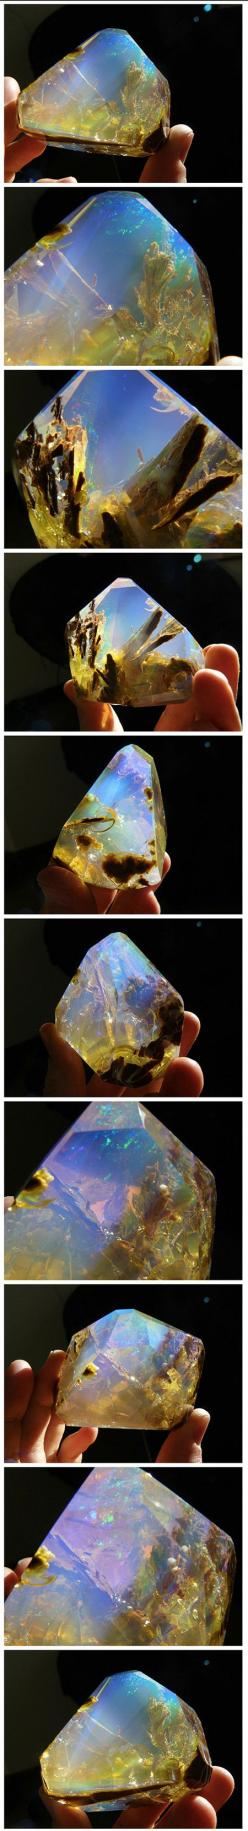 Crystals and gems are revered and collected for their physical beauty and monetary value and this Opal Butte crystal with contra luz color is no exception. The stunning gemstone, like many opals, features a varied spectrum of colors, but what separates it